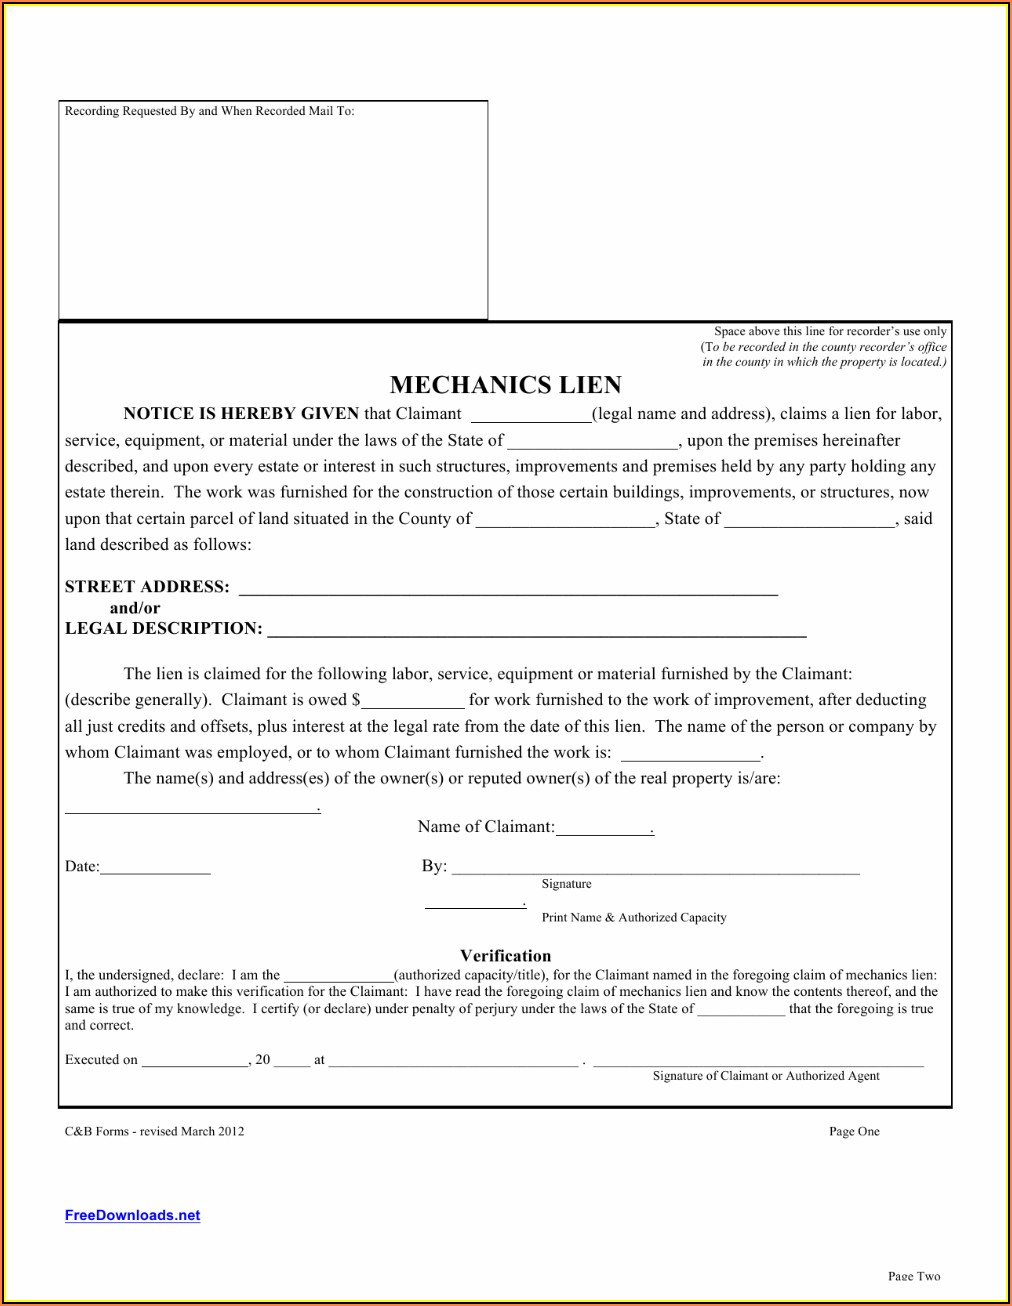 Texas Mechanic's Lien Form Pdf